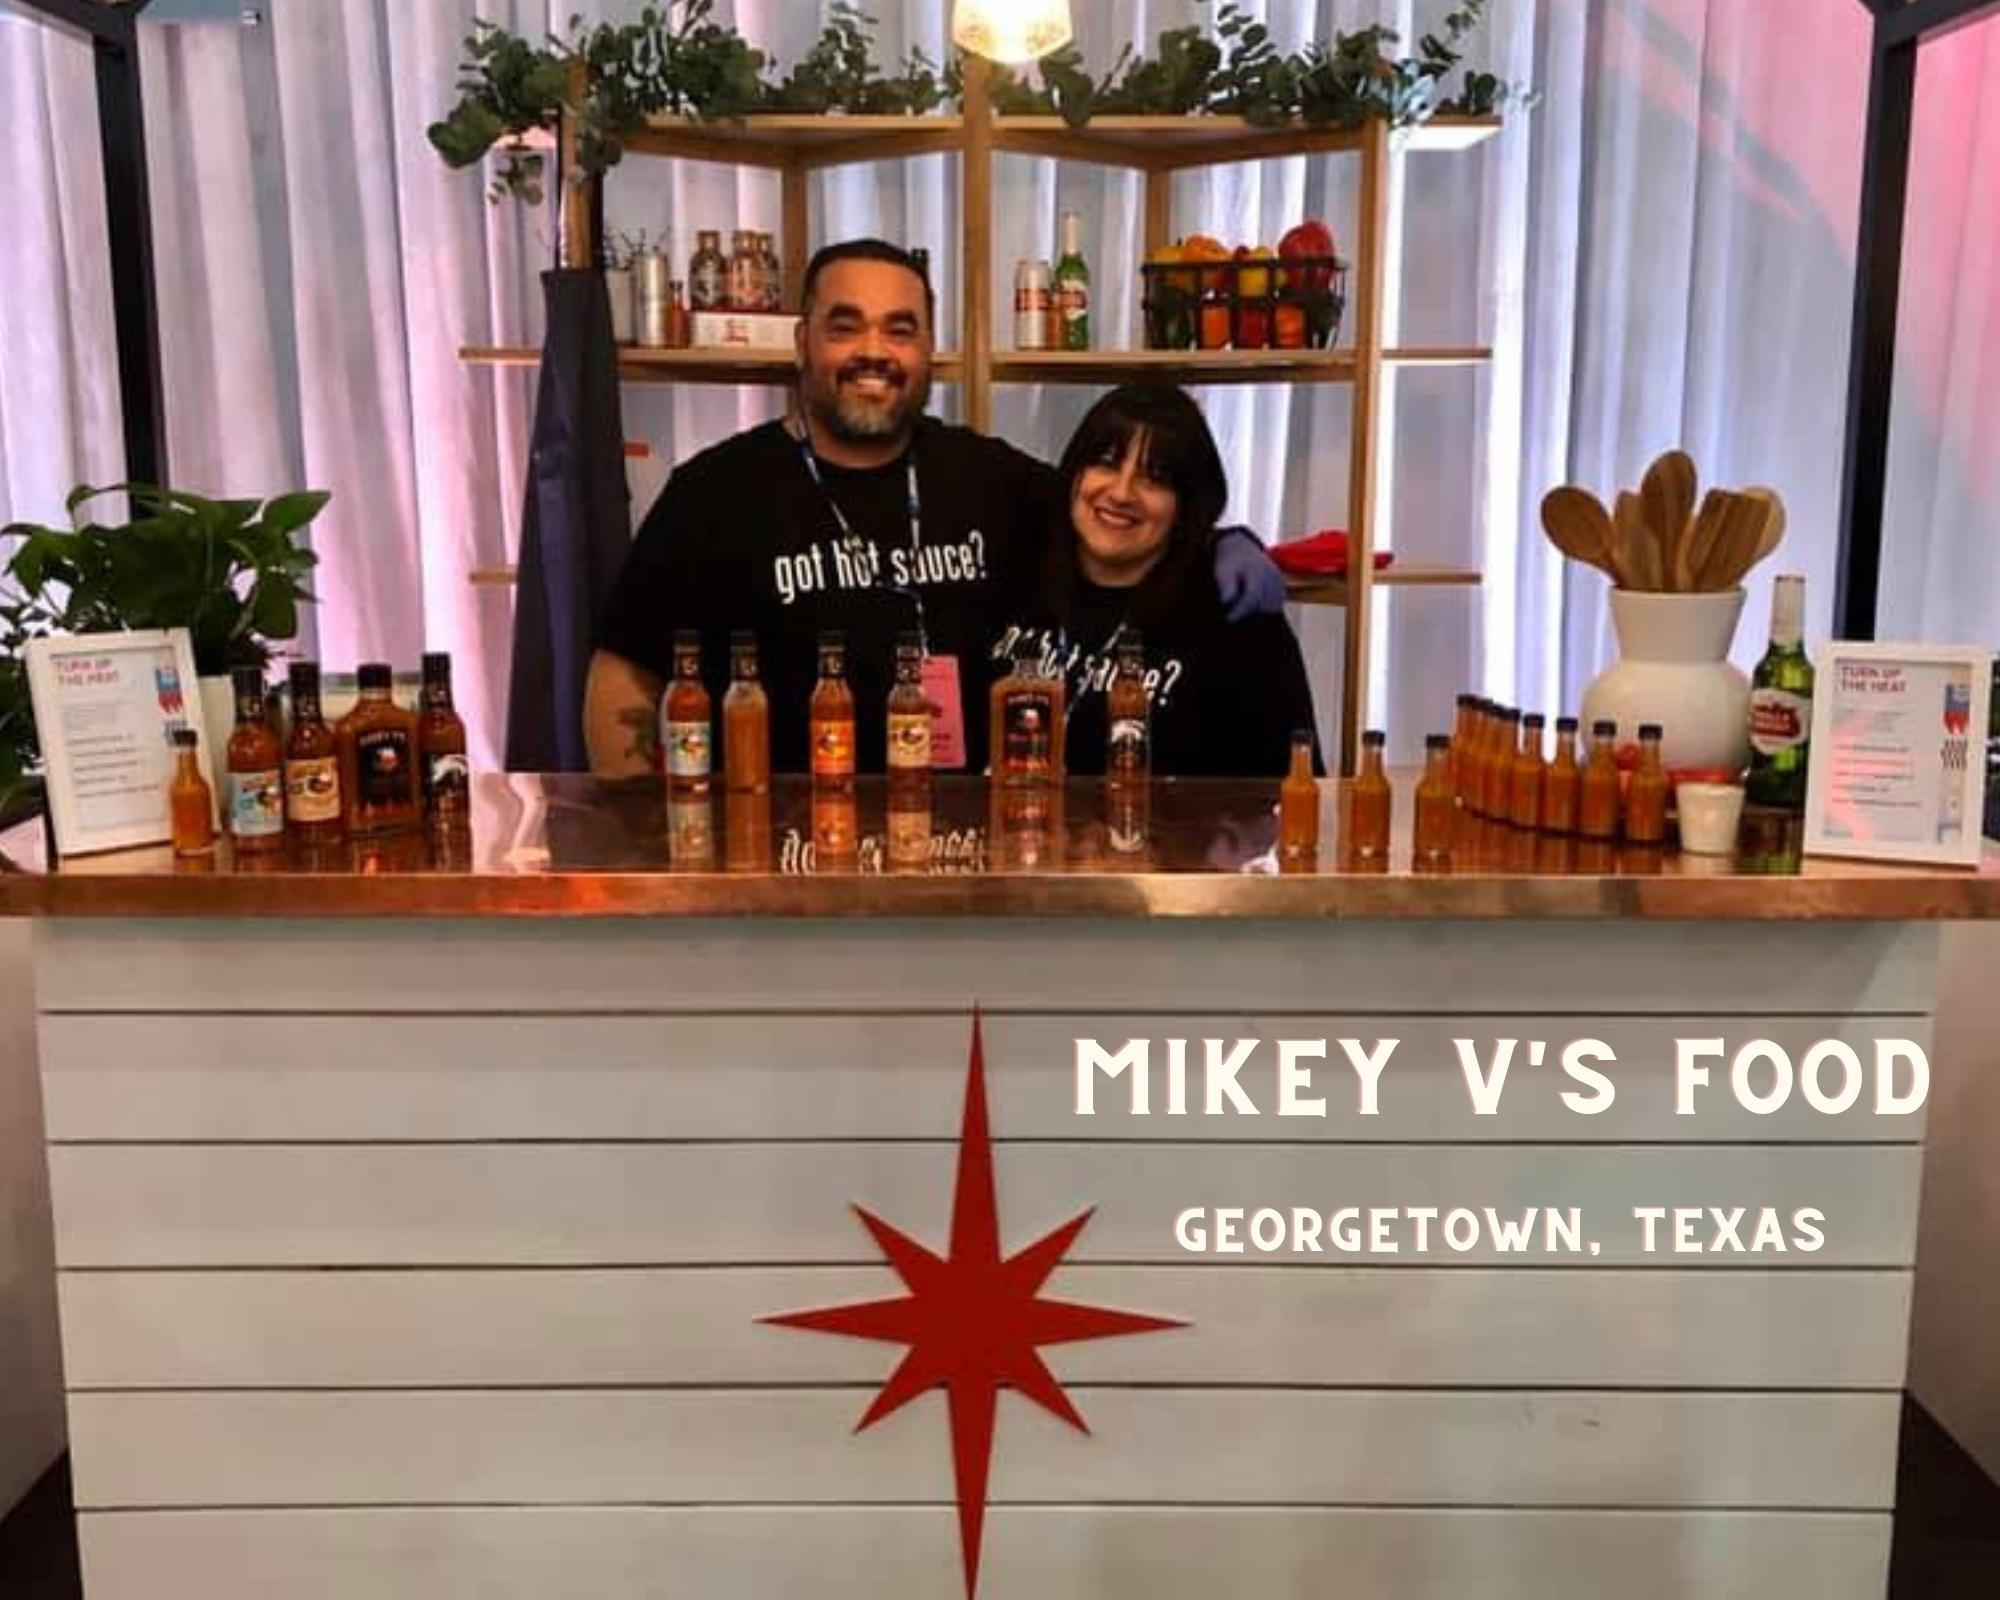 mikey v of mikey vs foods podcast